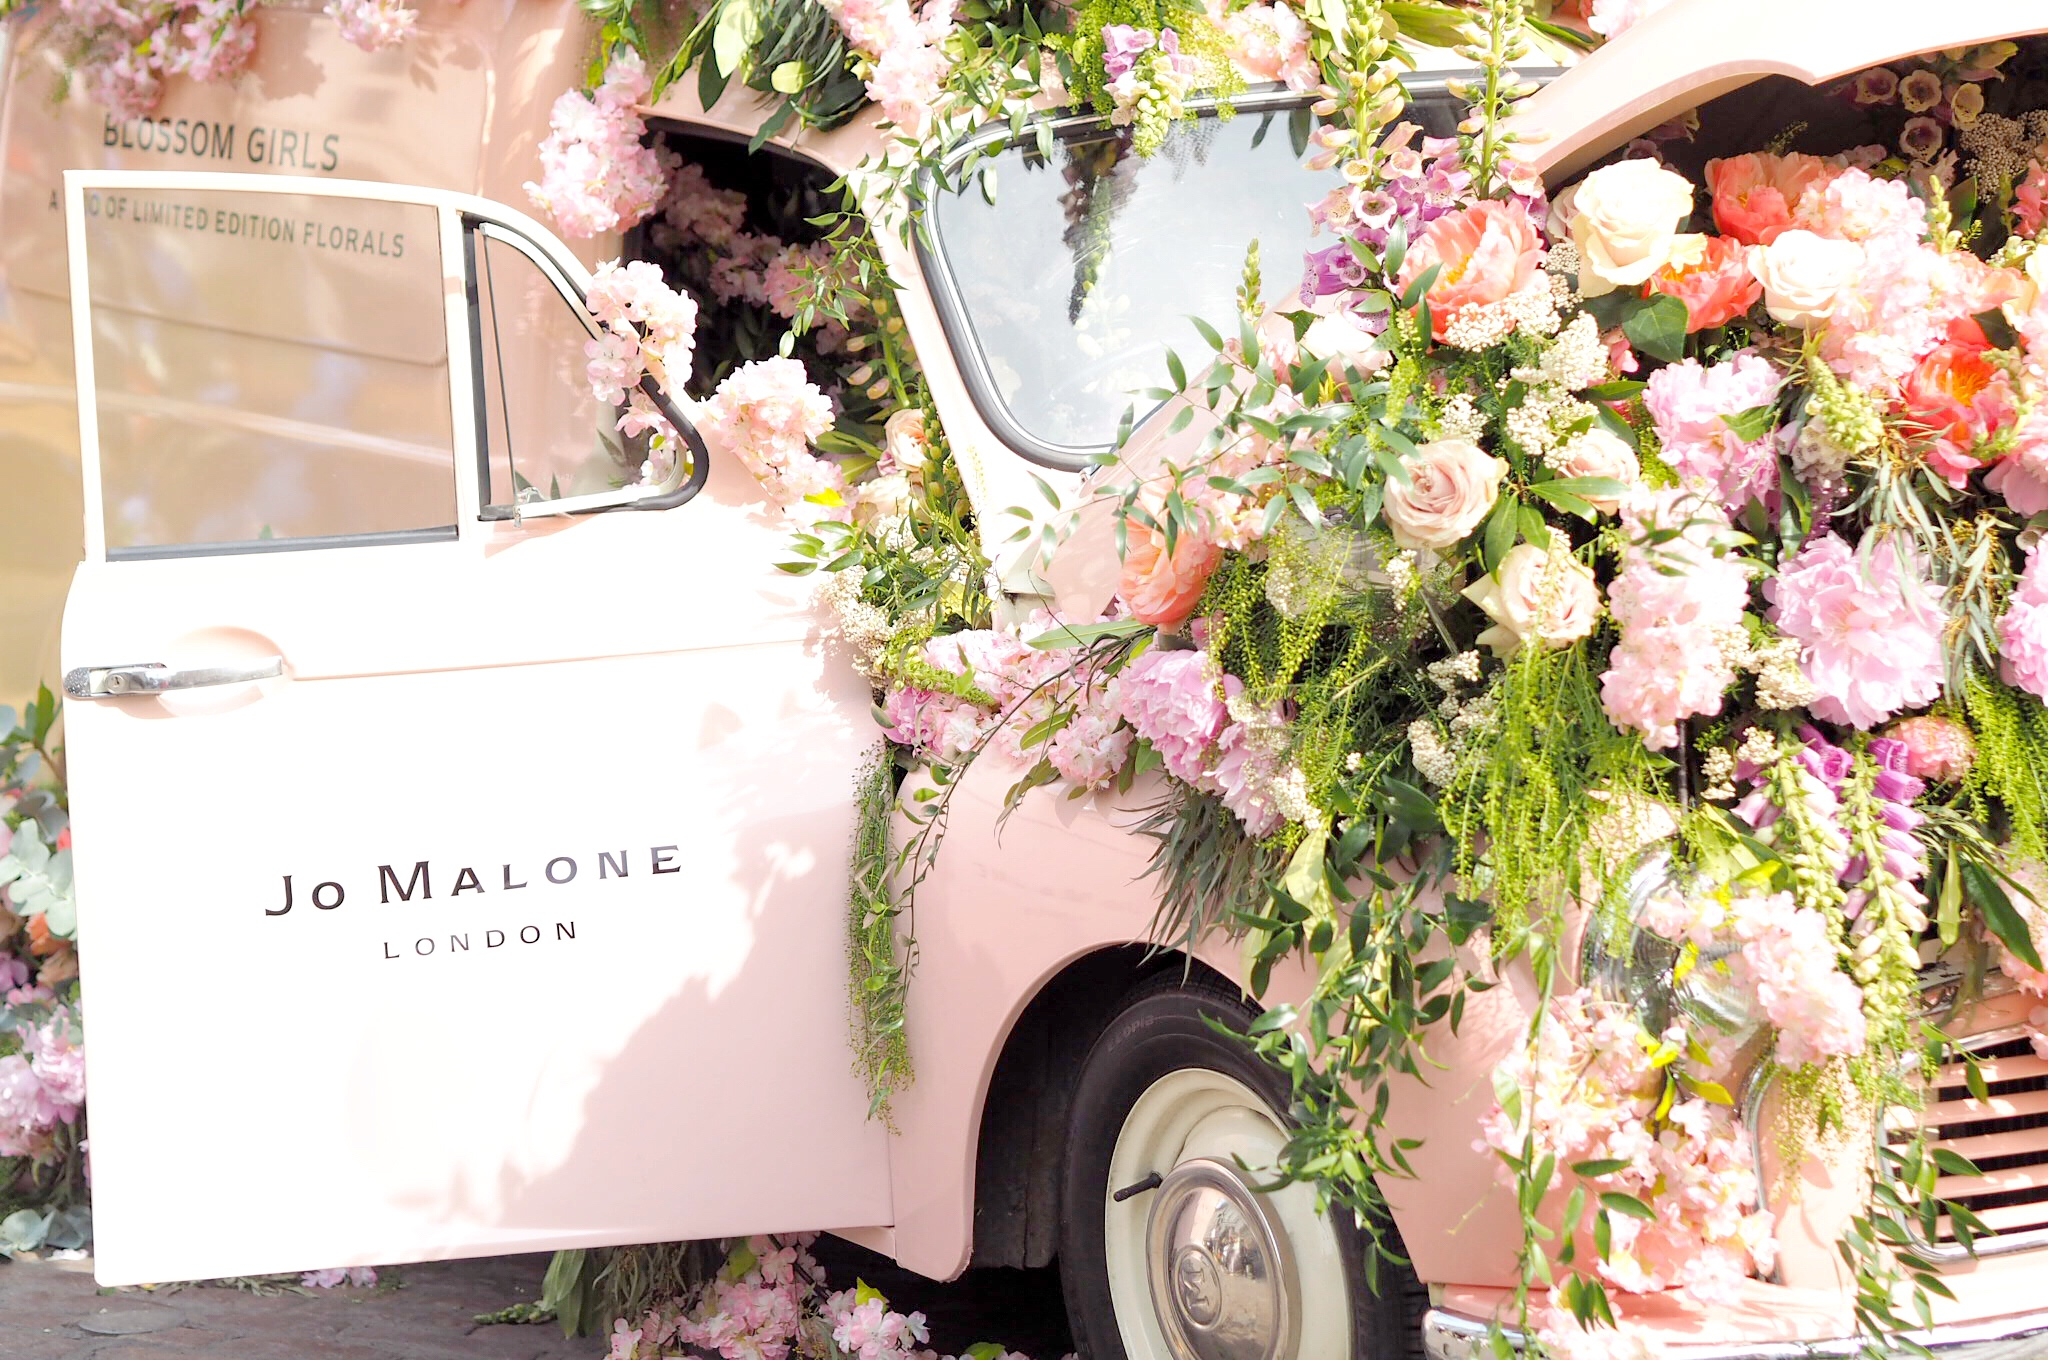 Life Lately: London In Bloom, Birthday Wishes & Cotton Candy Ice Cream Dreams